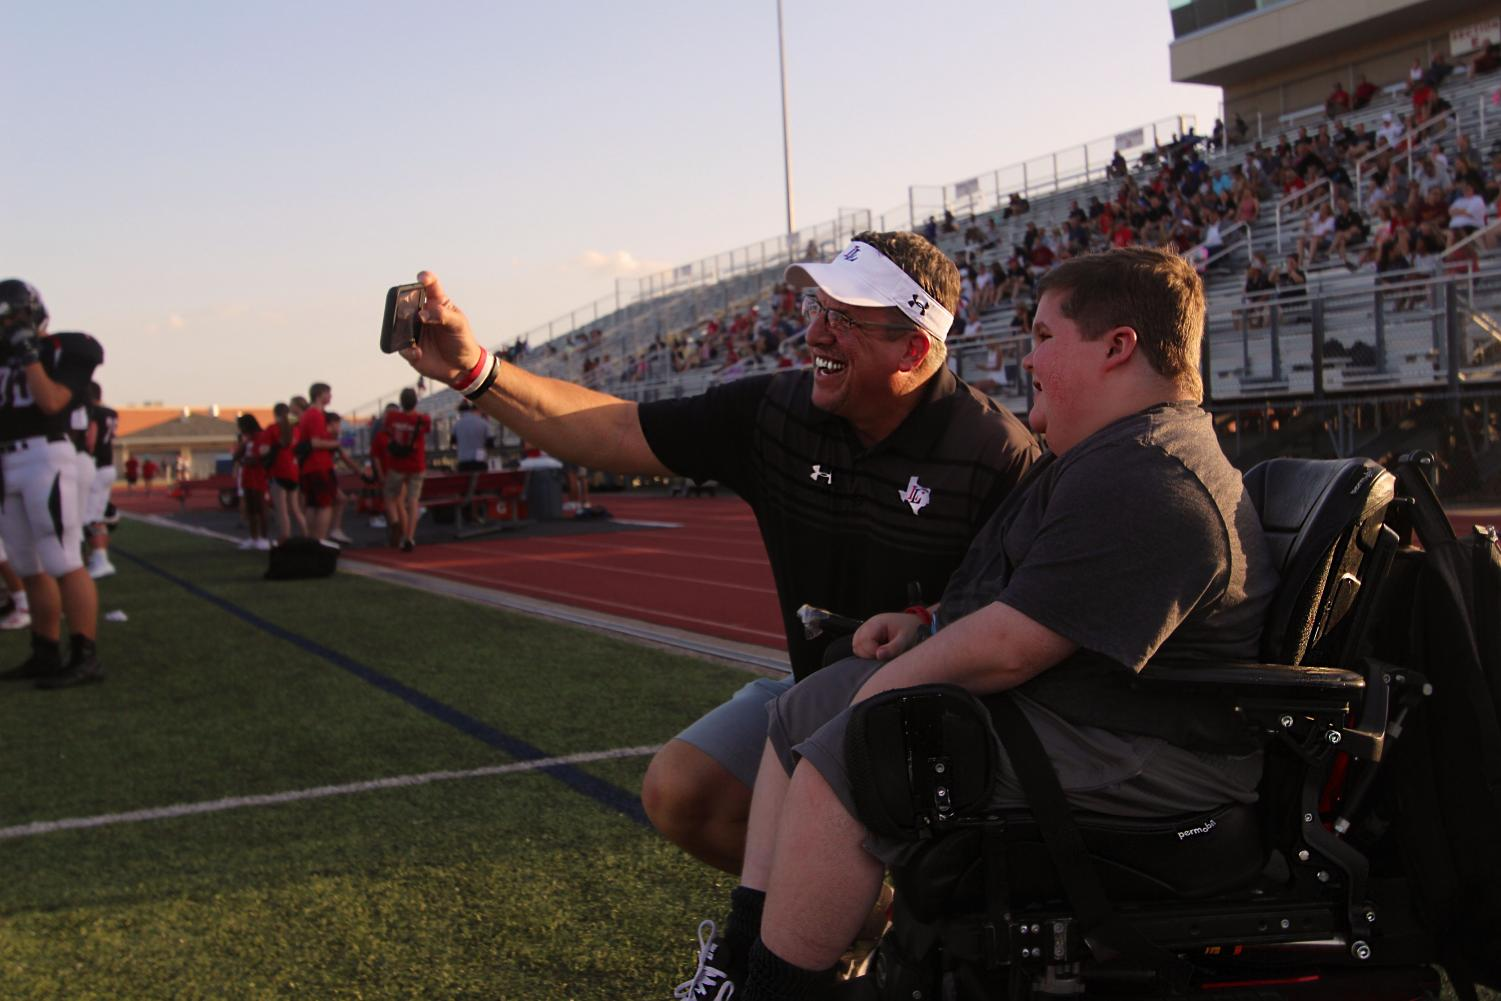 Superintendent Dr. Mike Goddard takes a selfie with sophomore Reid White on the sideline before the first play. This is Goddard's first year as superintendent, and his iconic selfies express his enthusiasm for the position.